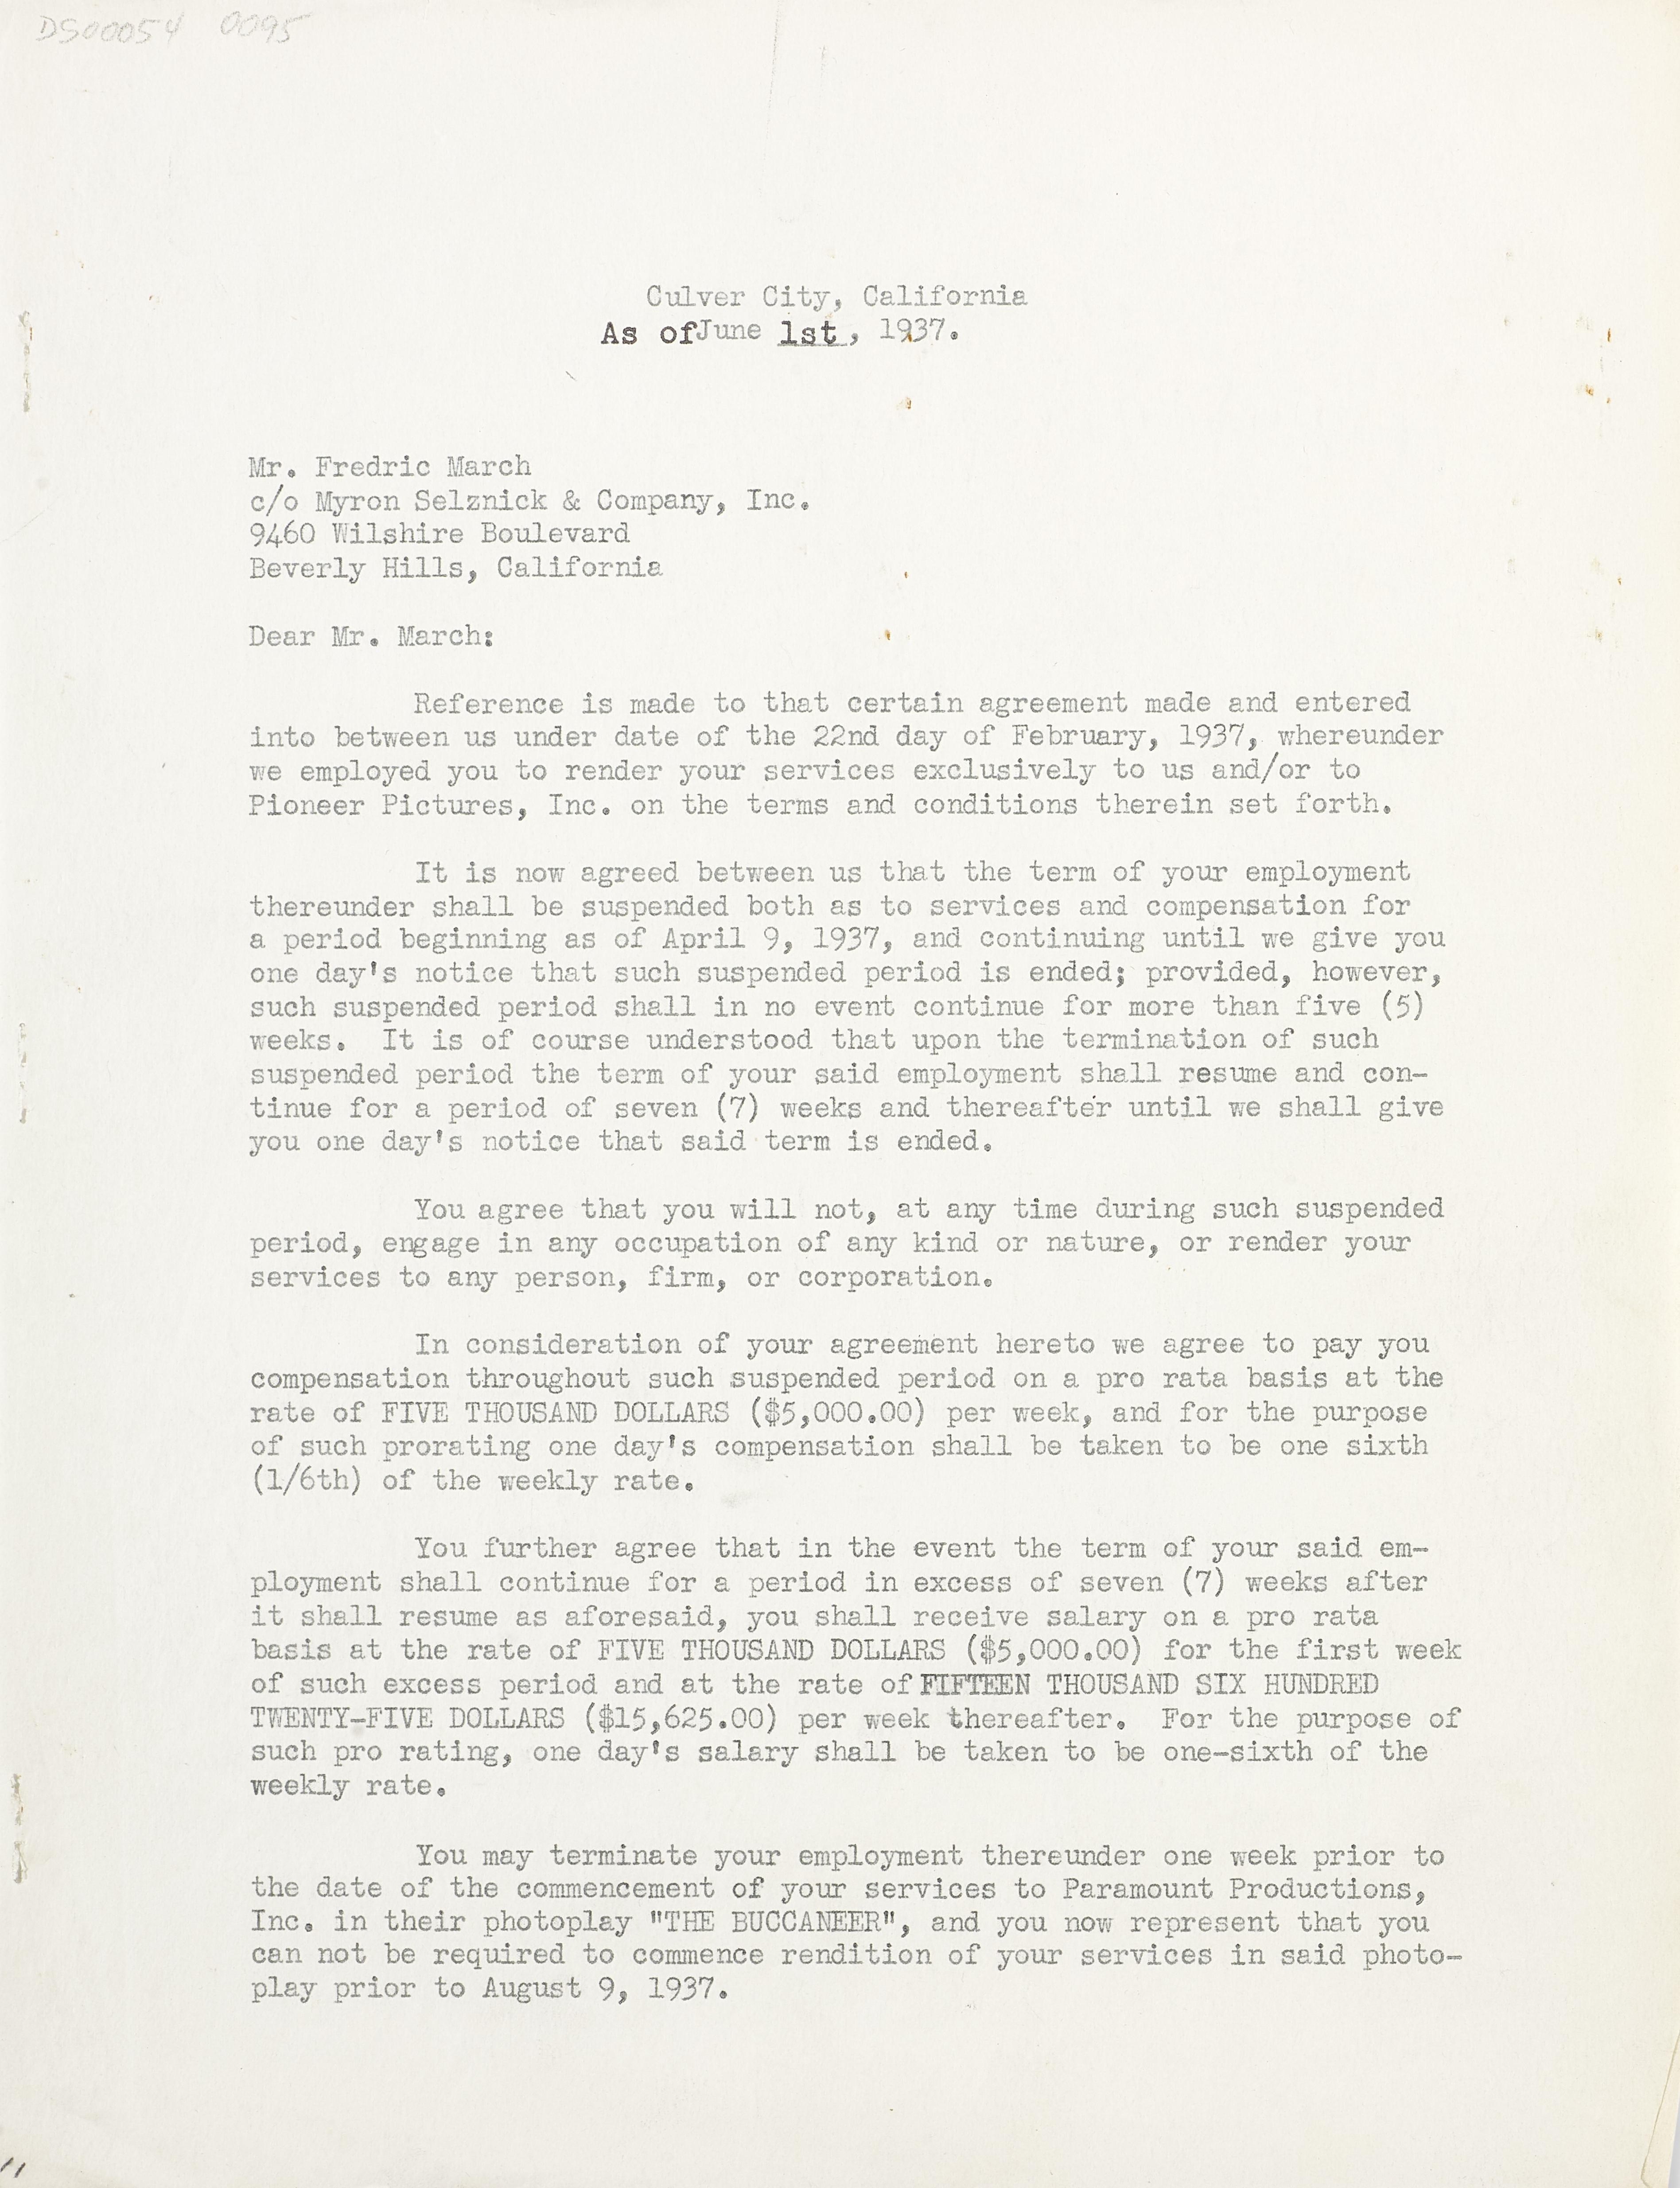 A Fredric March signed contract - Image 2 of 2